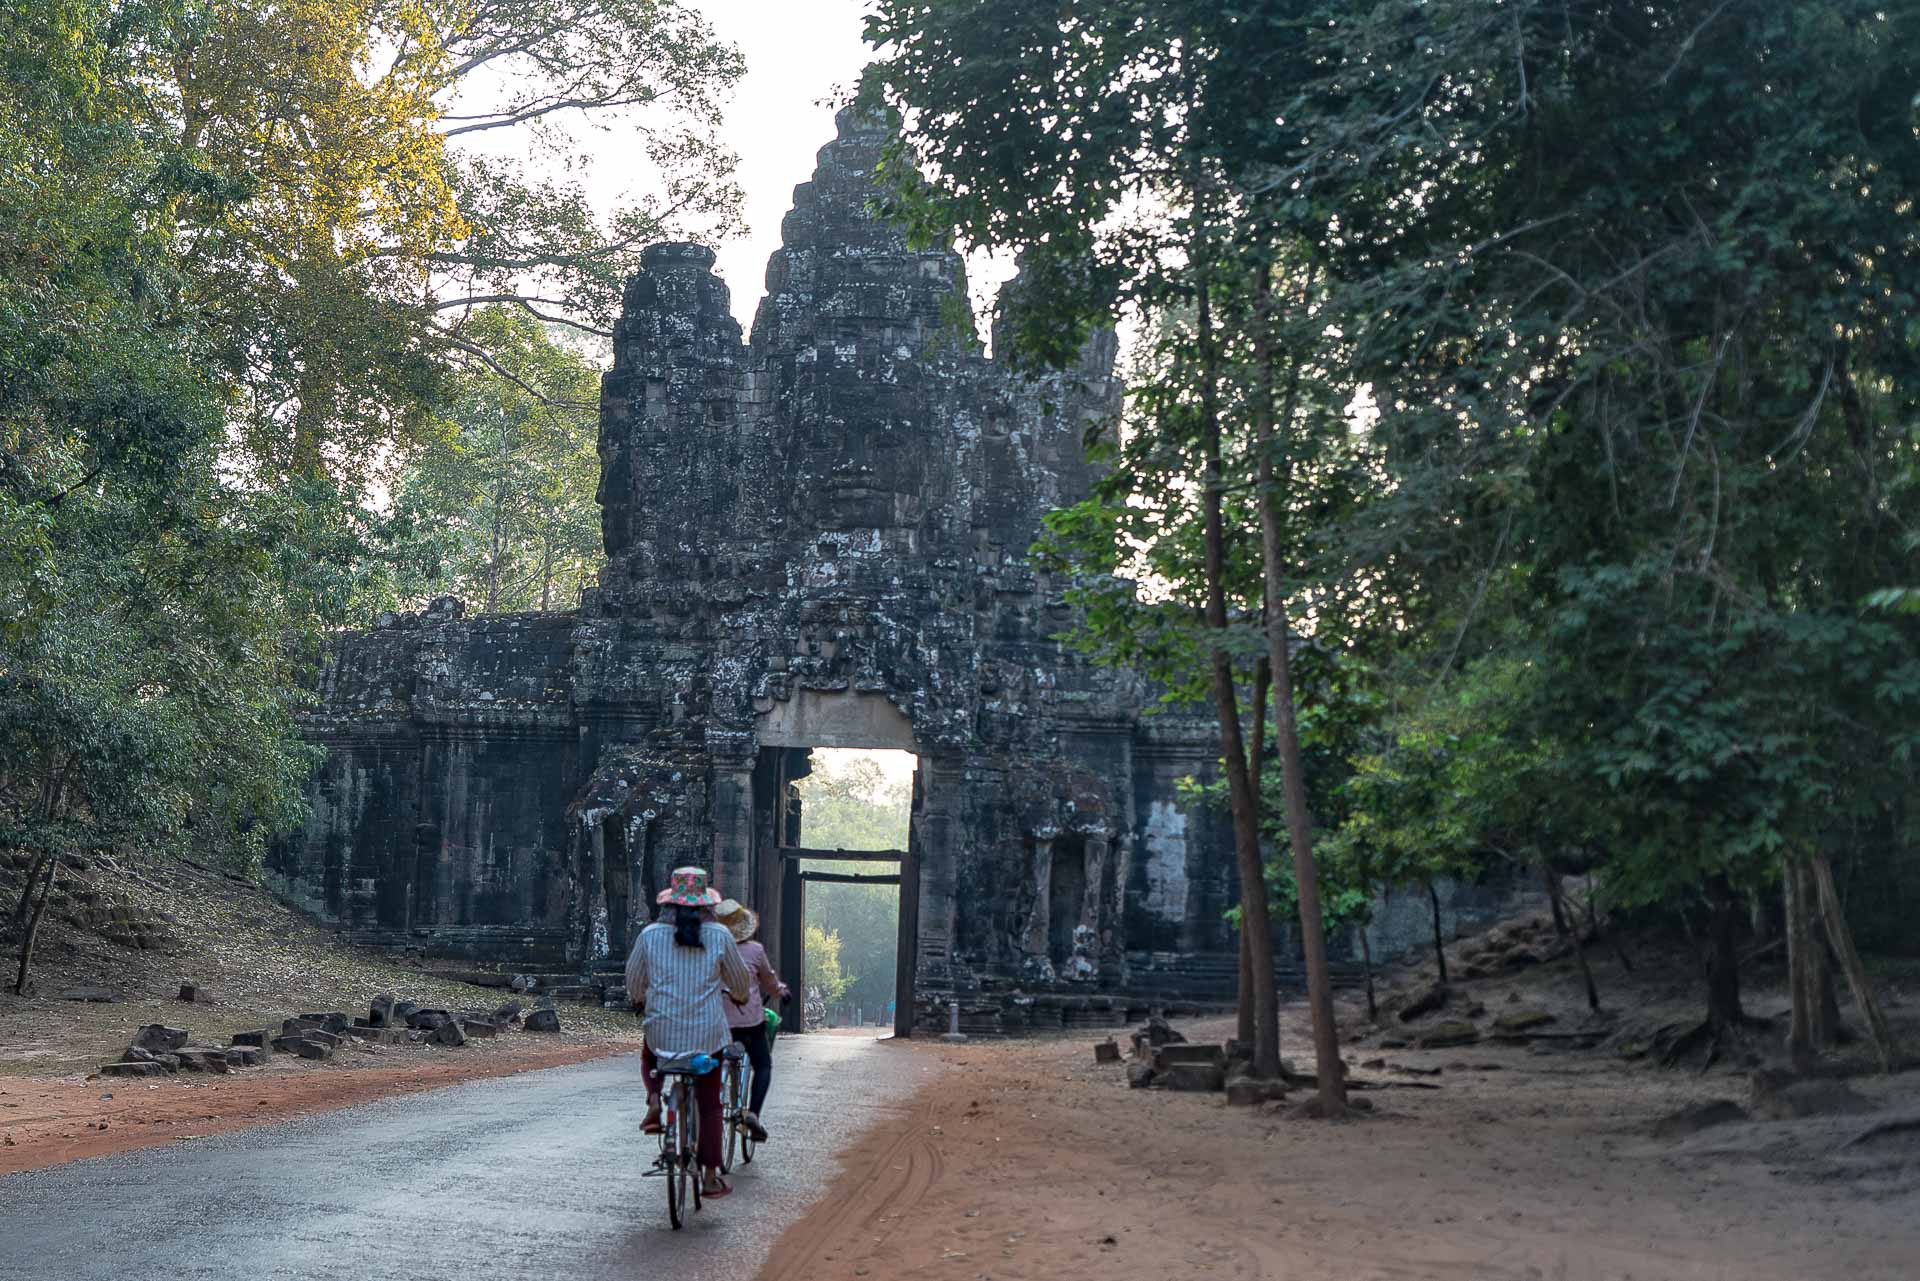 Lesvoyageuses-guide-voyage-Siem-reap-angkor-temples-Cambodge-31